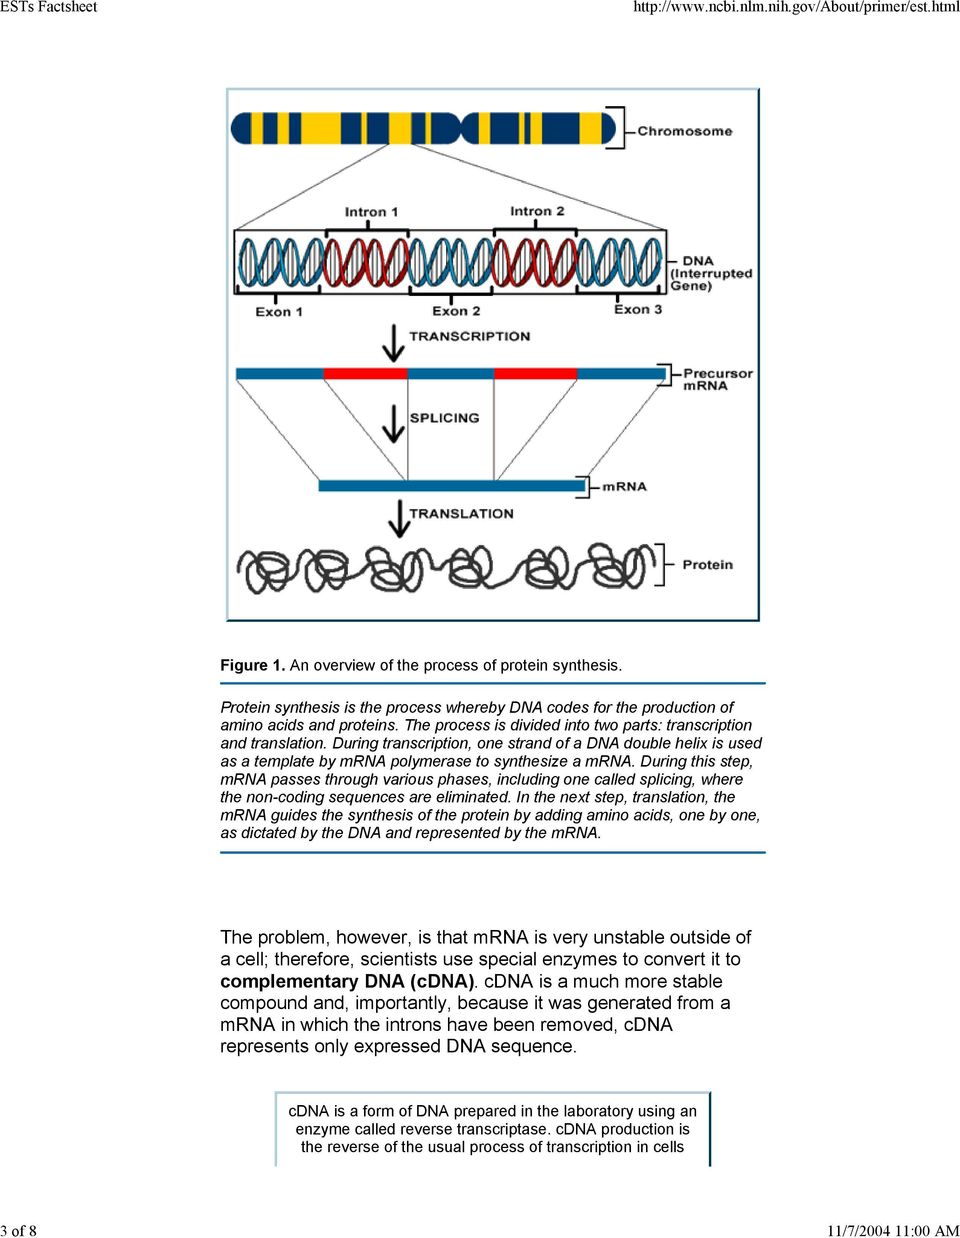 During this step, mrna passes through various phases, including one called splicing, where the non-coding sequences are eliminated.